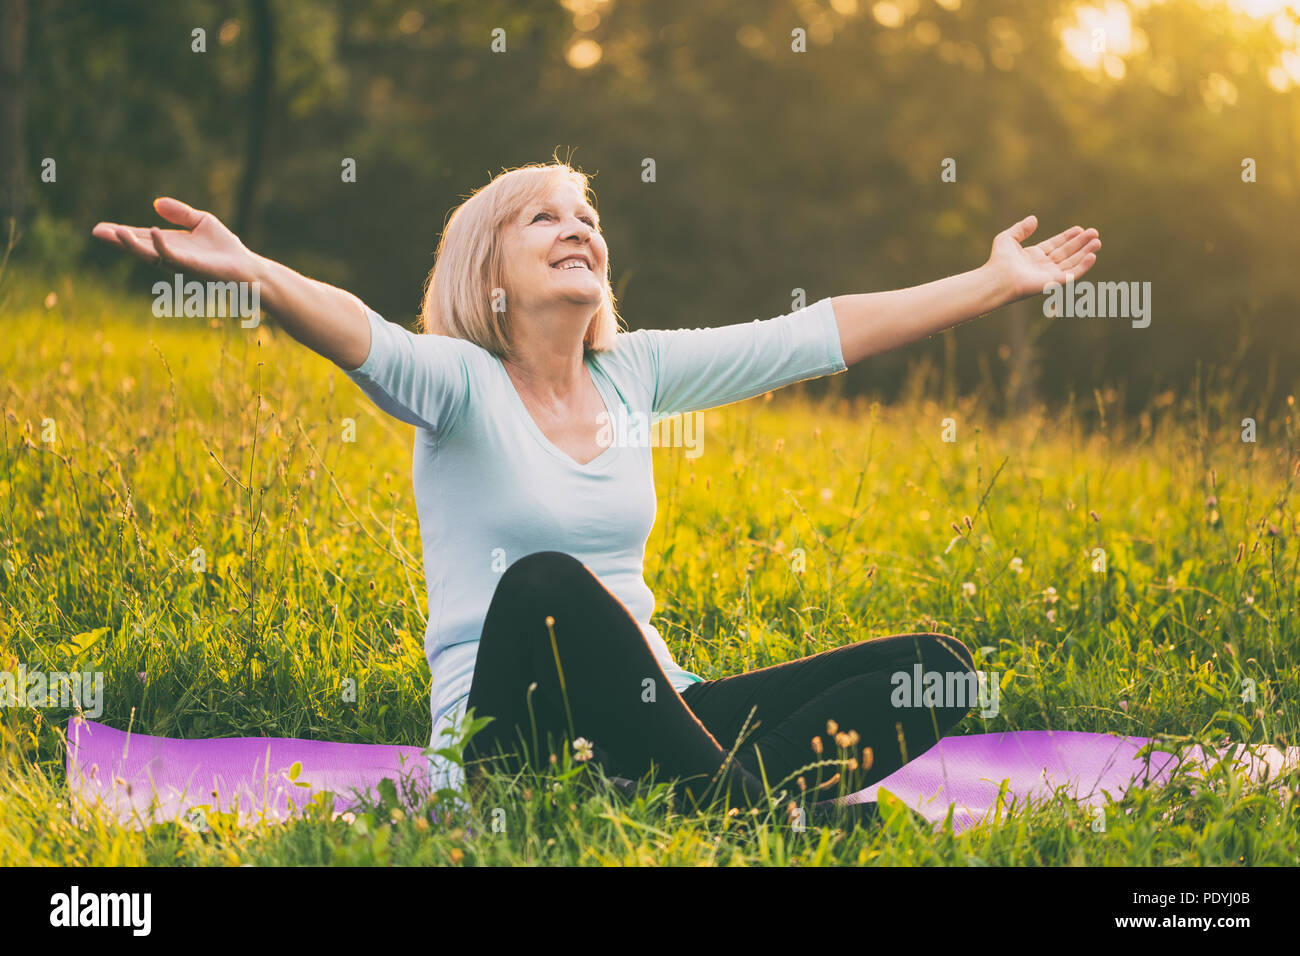 Senior woman enjoys sitting on the exercise mat with her arms outstretched in the nature.Image is intentionally toned. - Stock Image